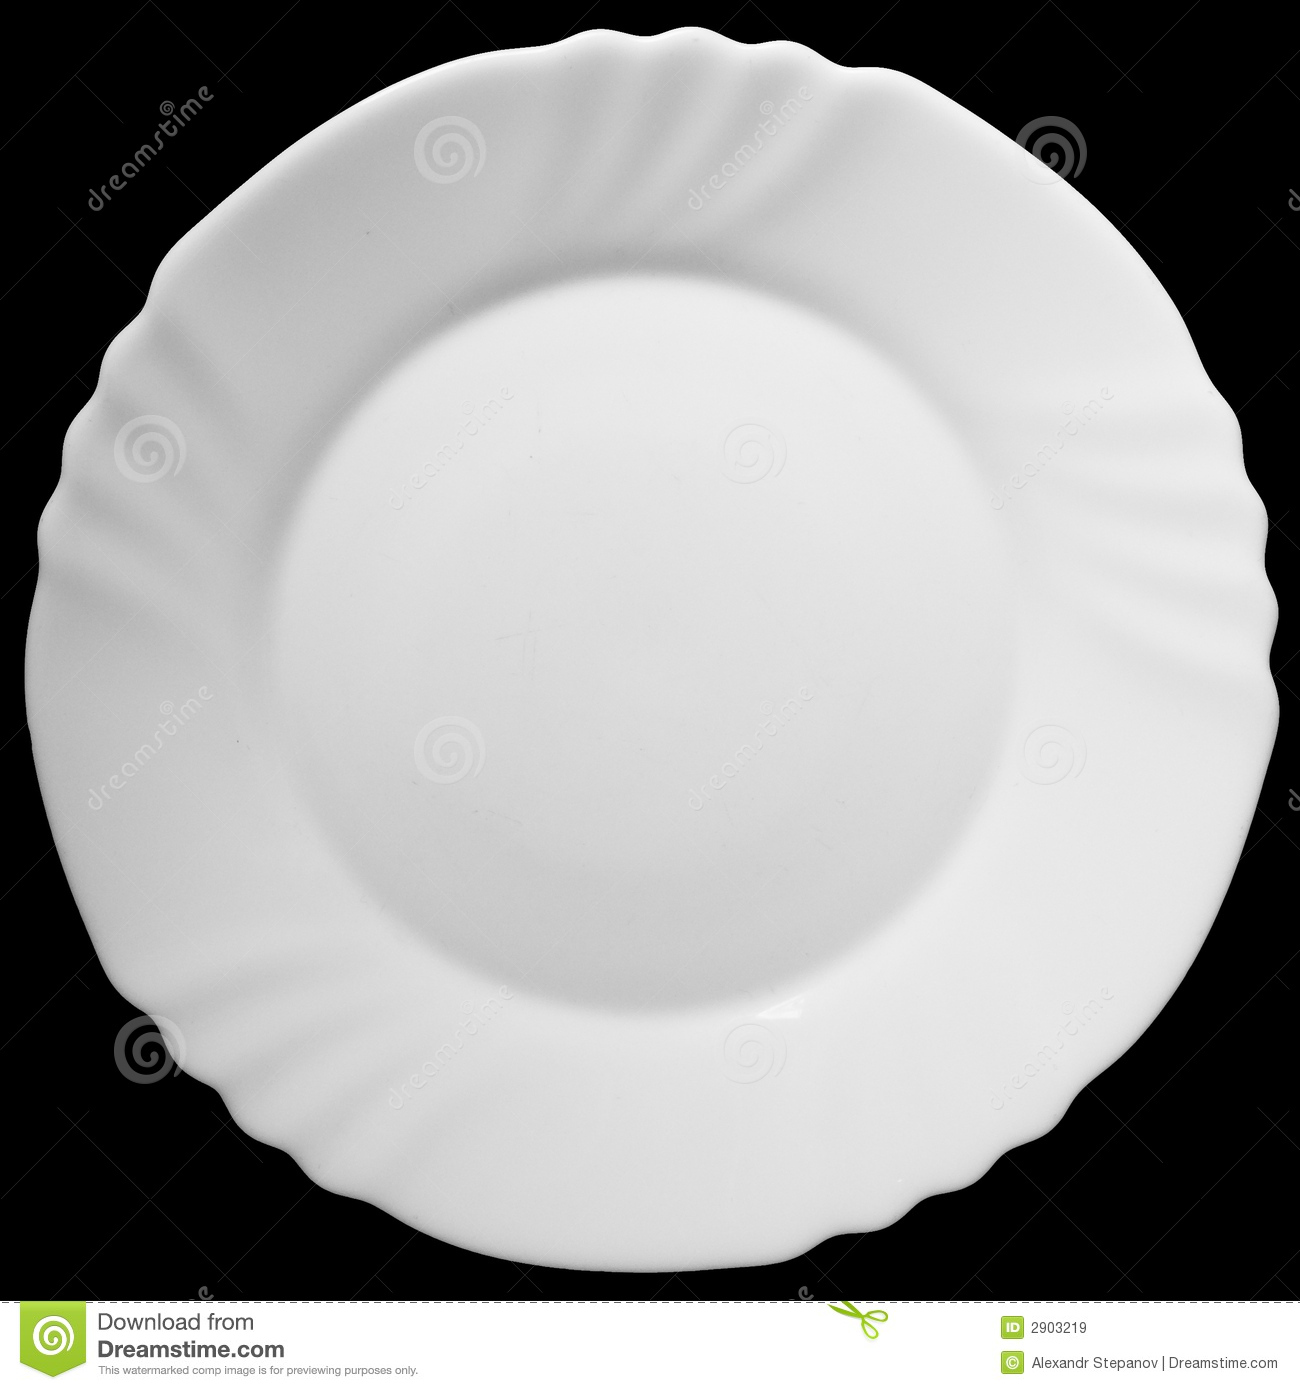 Plate Clipart Black And White The White Plate On A Black